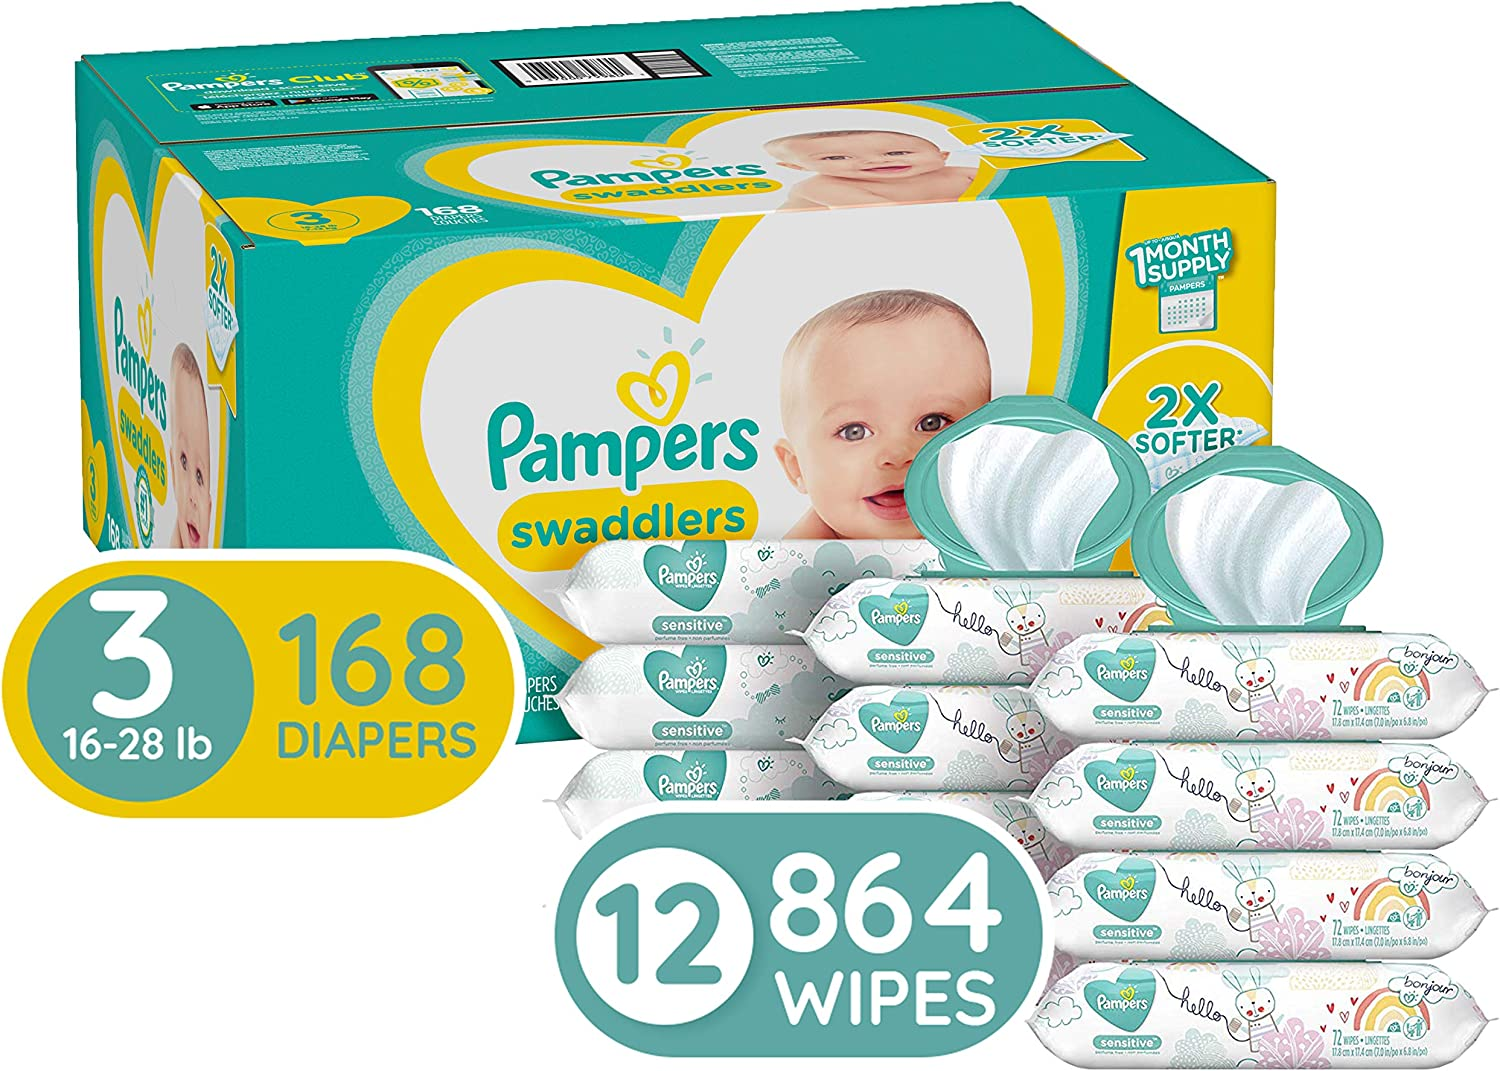 Diapers Size 3, 168 Count and Baby Wipes - Pampers Swaddlers Disposable Baby Diapers, ONE Month Supply with Pampers Sensitive Water Baby Wipes, 12X Pop-Top Packs, 864 Count